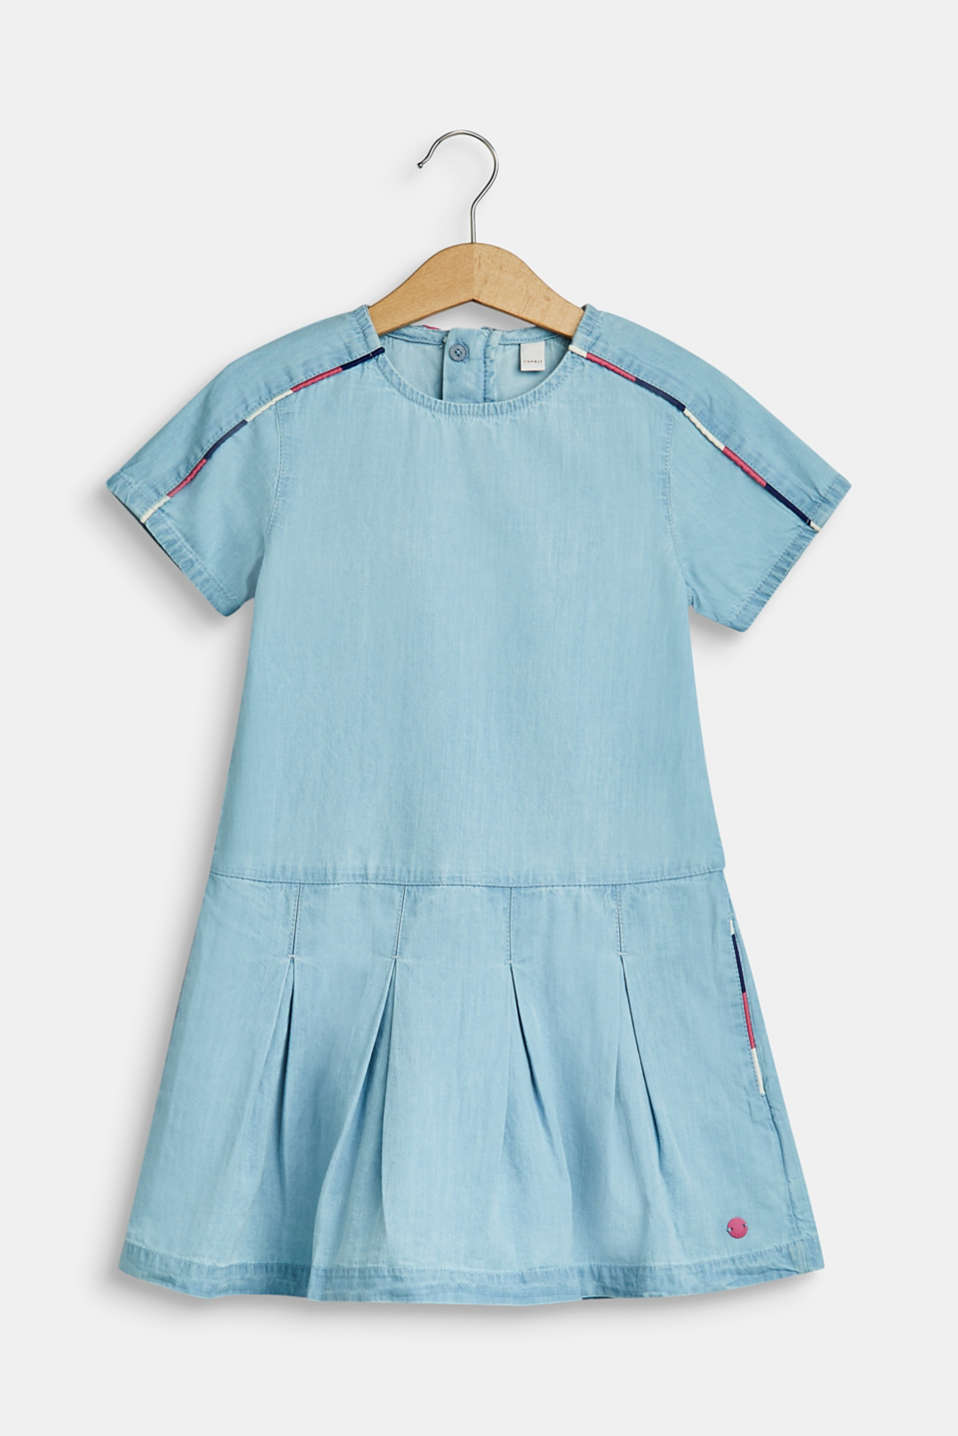 Esprit - Denim dress with piping, 100% cotton